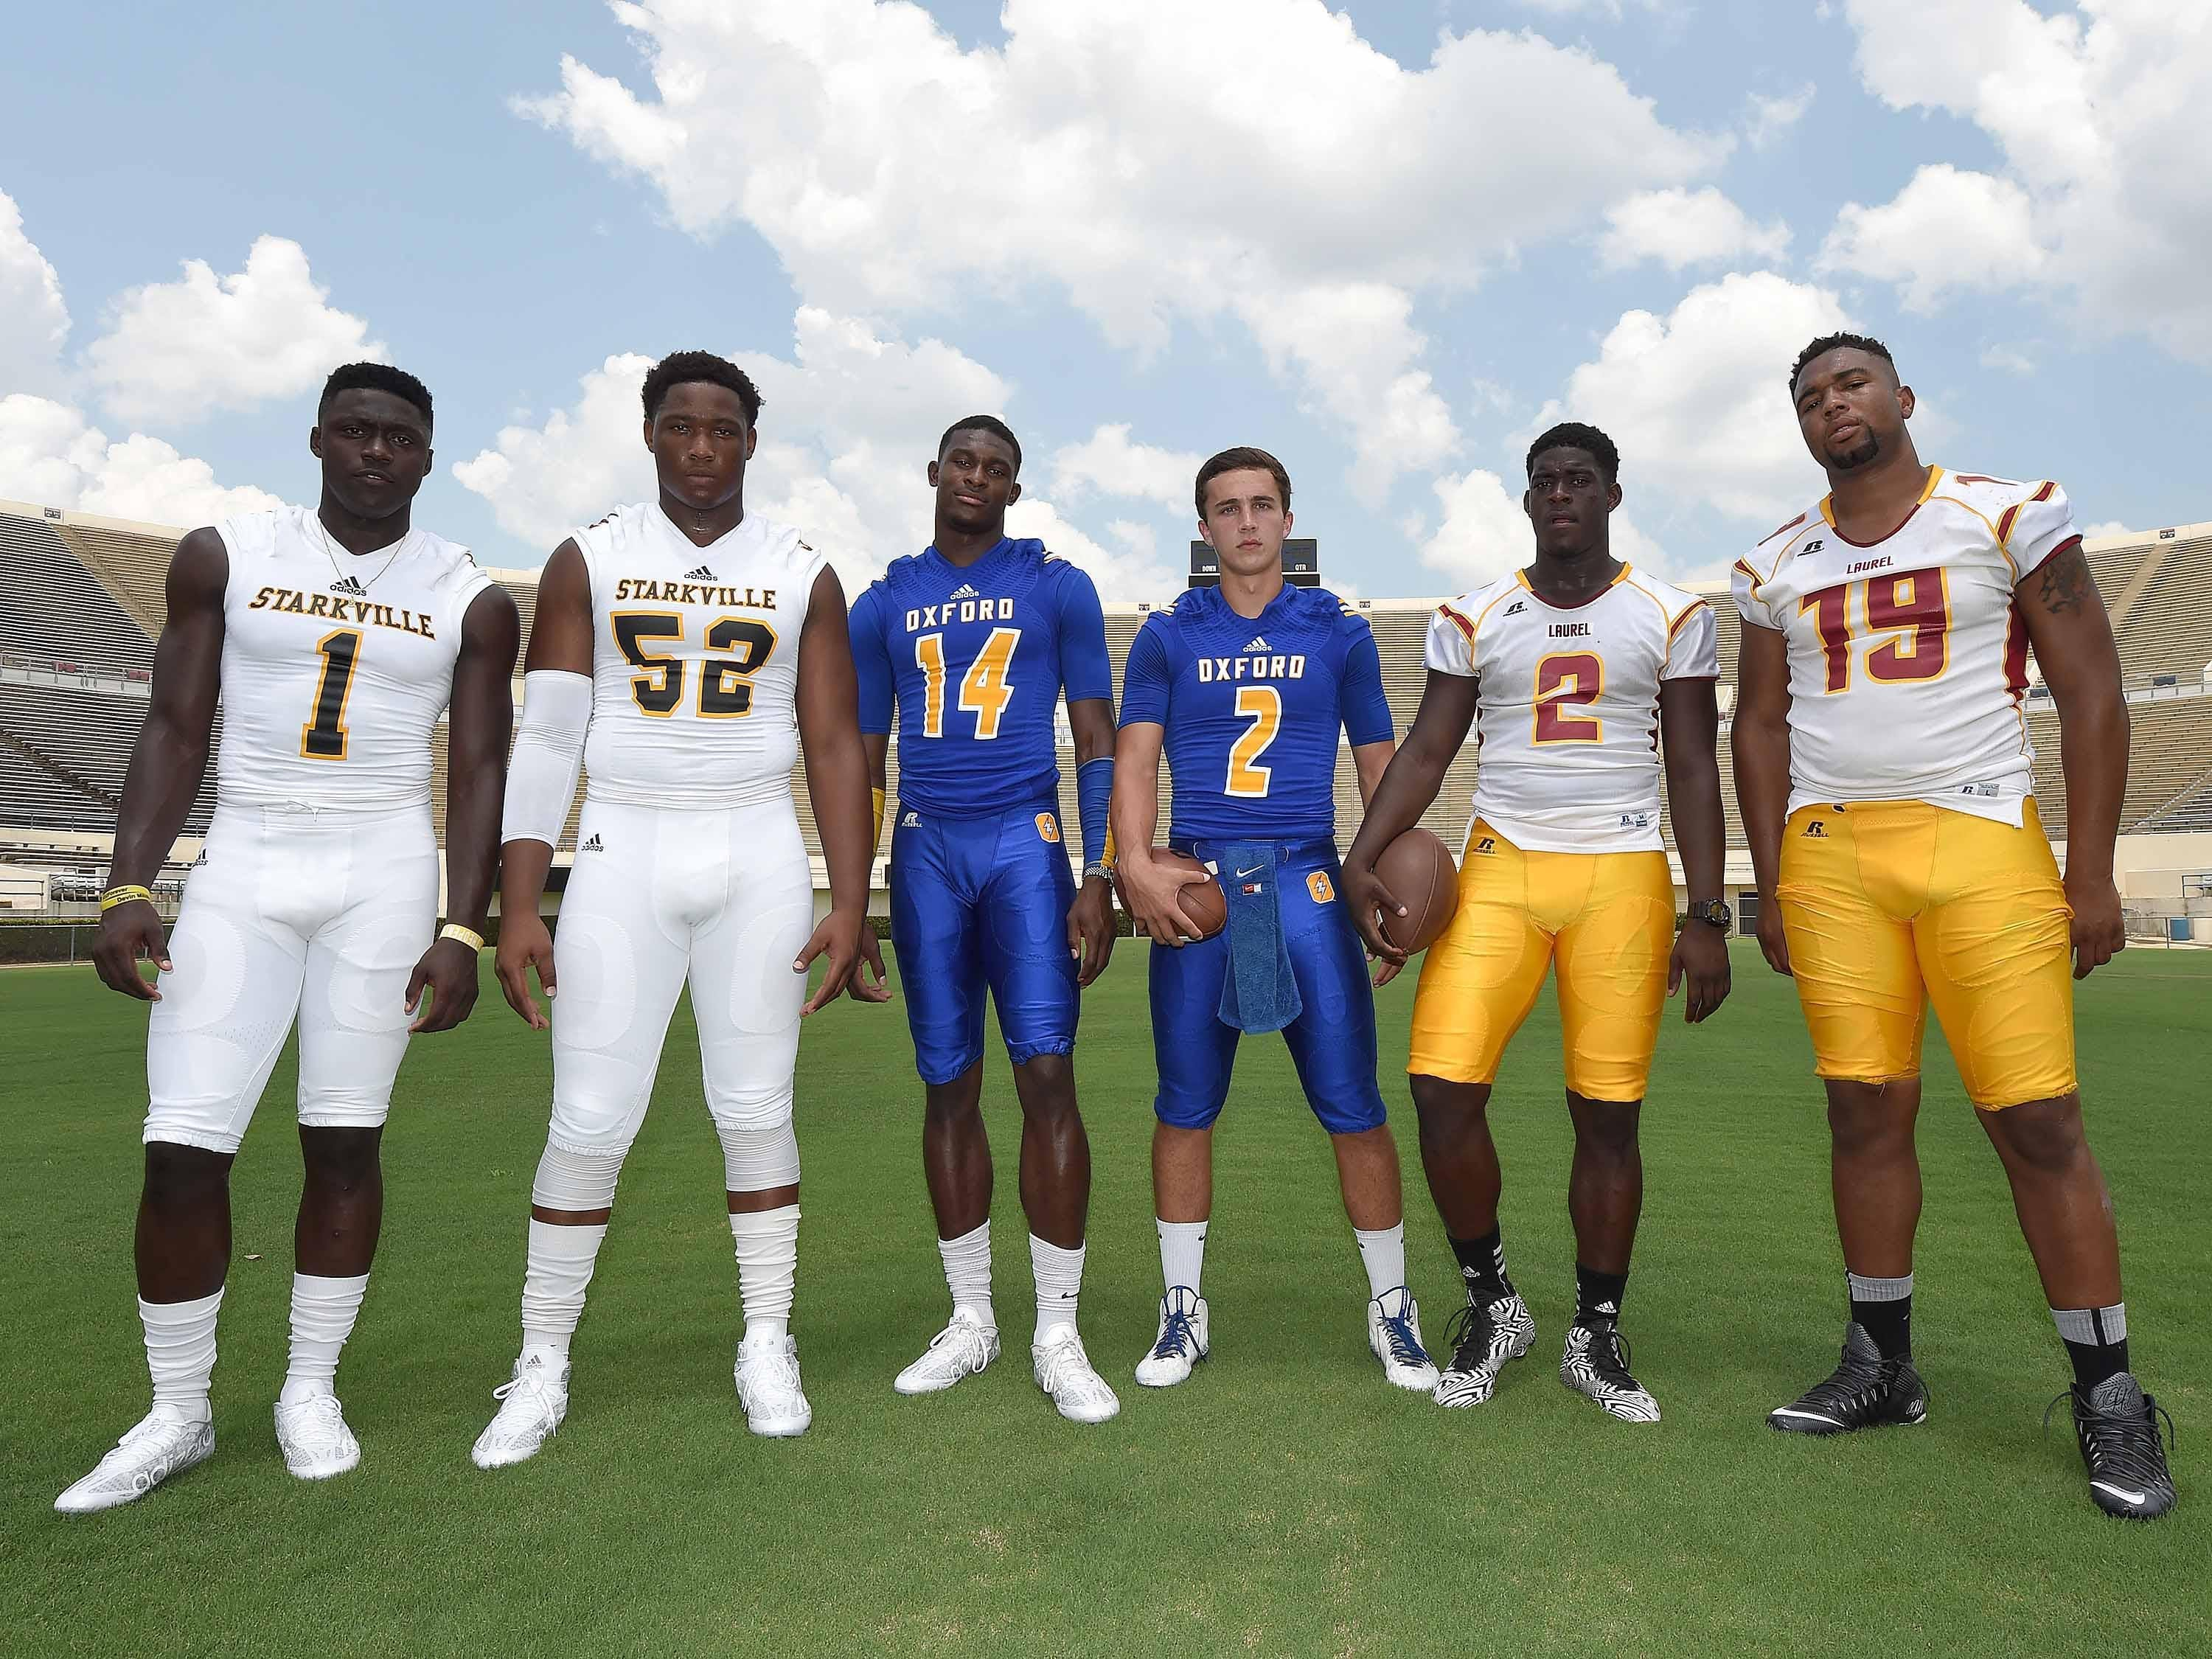 The 2015 Dandy Dozen included three pairs of teammates from Starkville, Oxford and Laurel. From left, A.J. Brown, Kobe Jones, D.K. Metcalf, Jack Abraham, Keon Howard and Octavious Cooley.